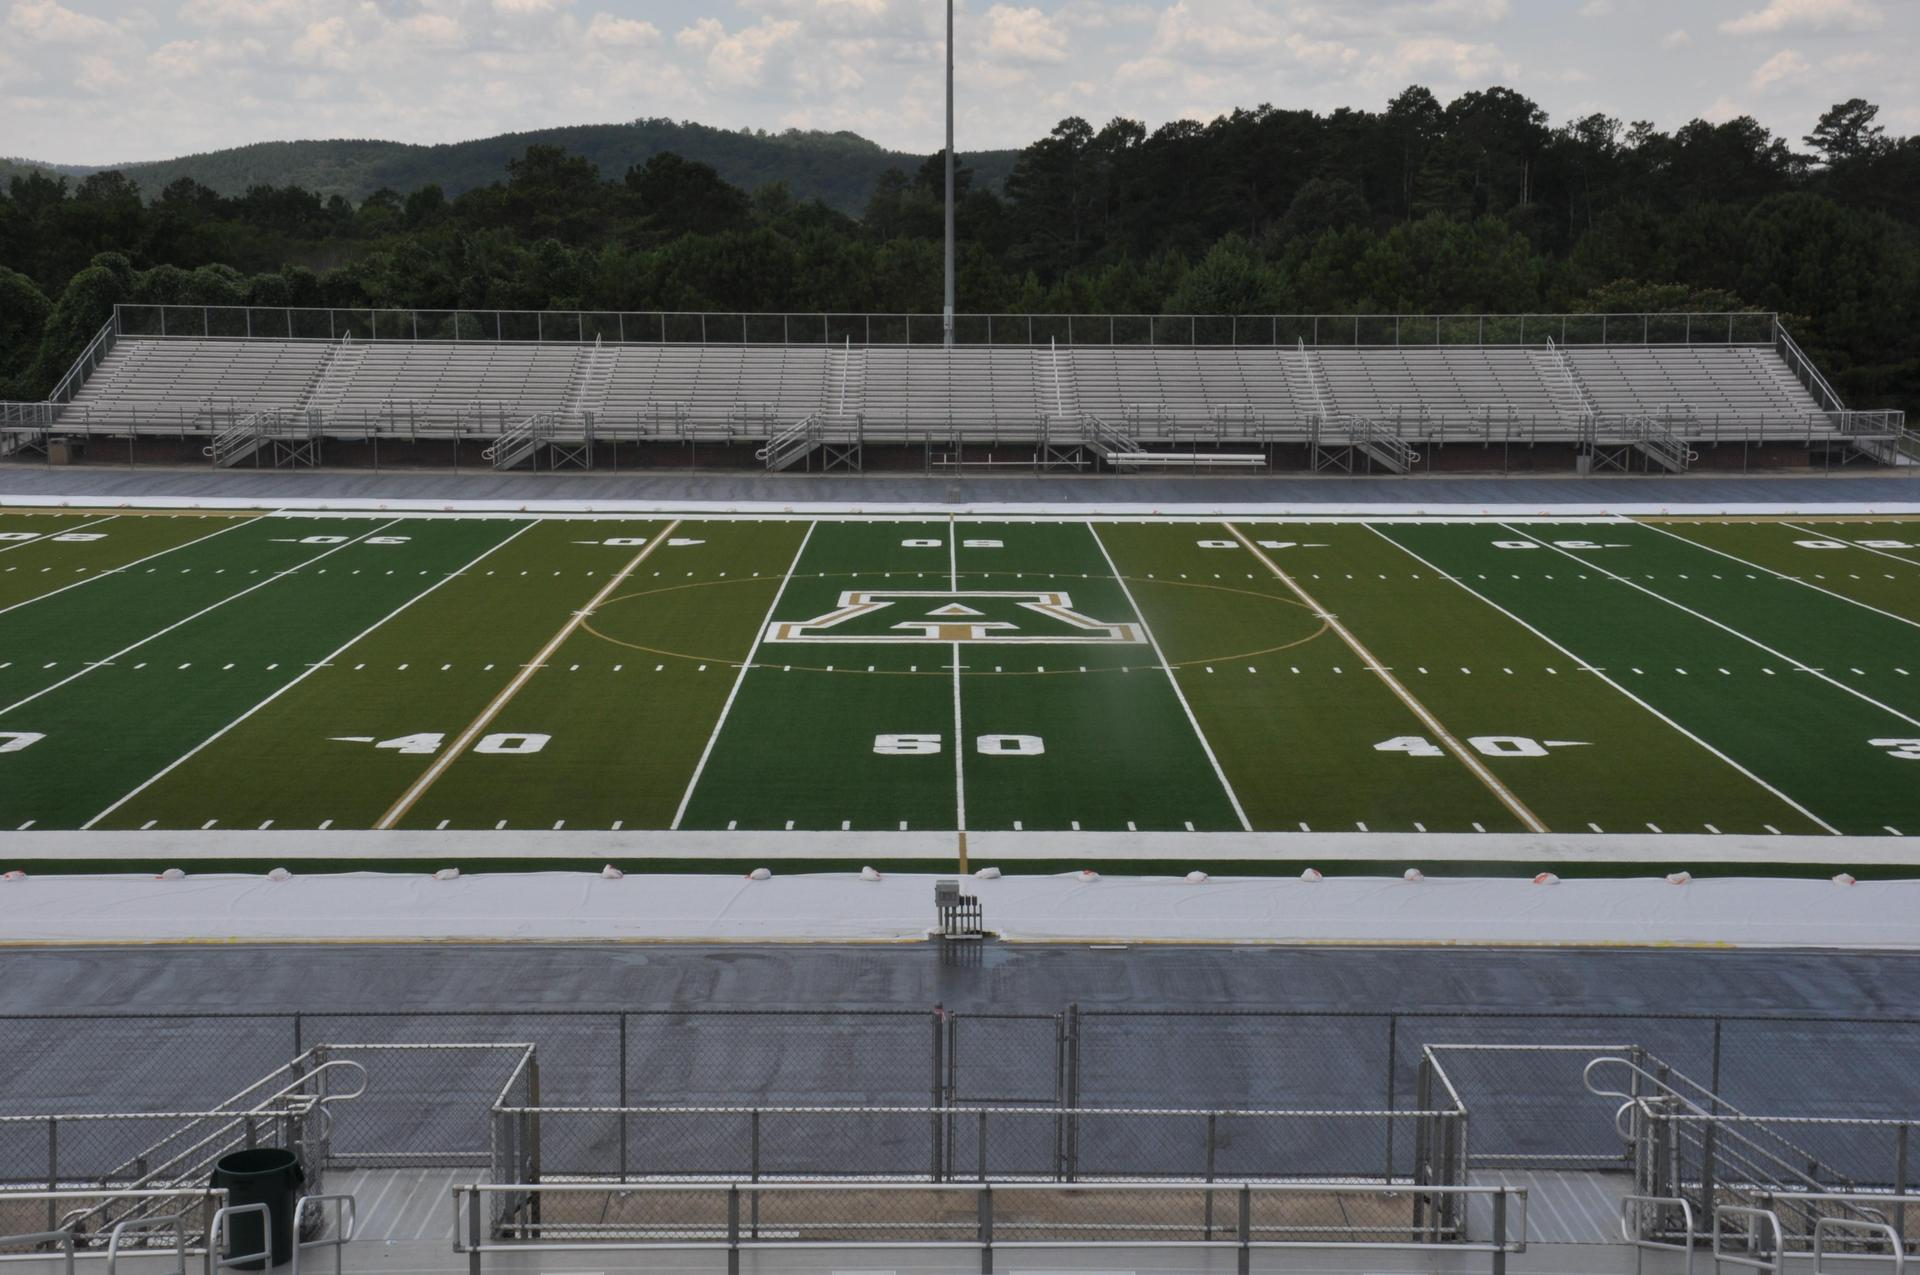 Adairsville High School Football Field